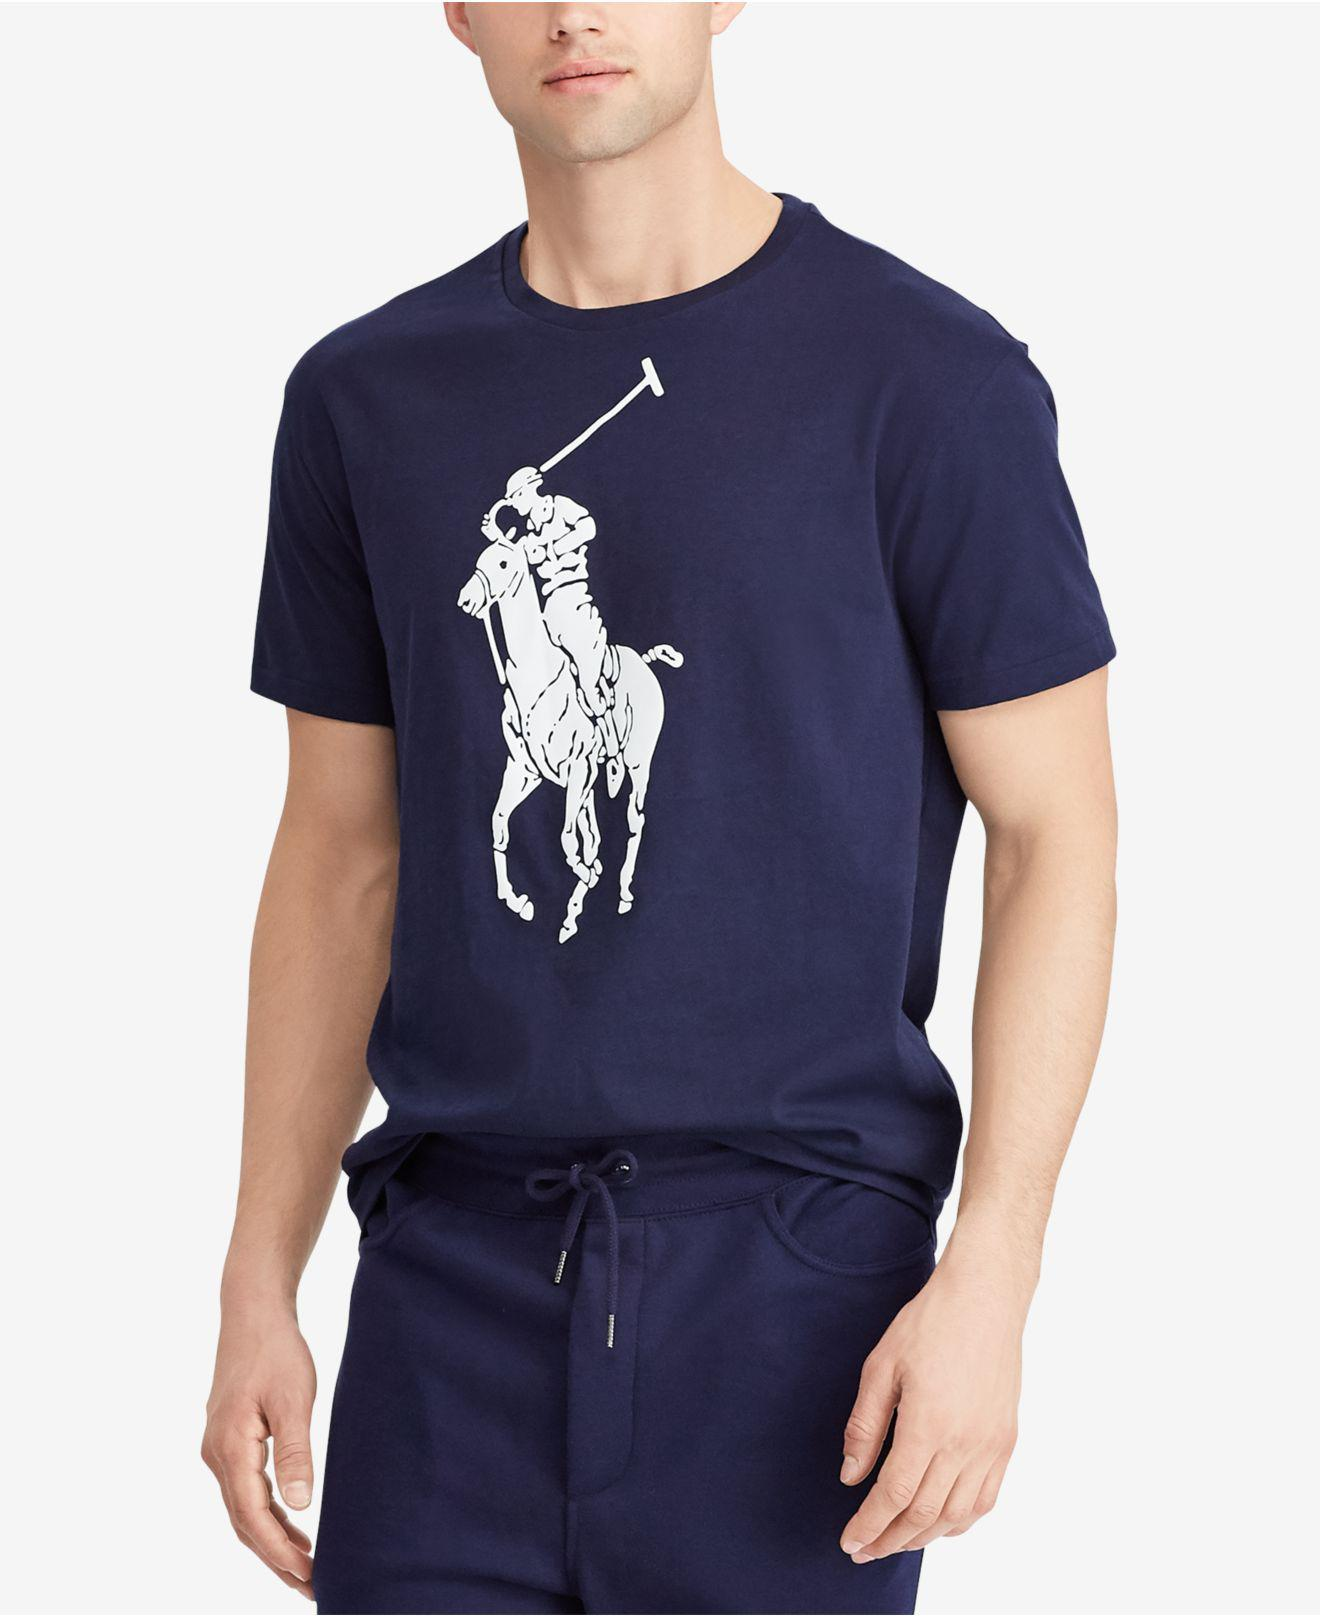 987e7356 Polo Ralph Lauren Classic-fit Big Pony T-shirt in Blue for Men - Lyst